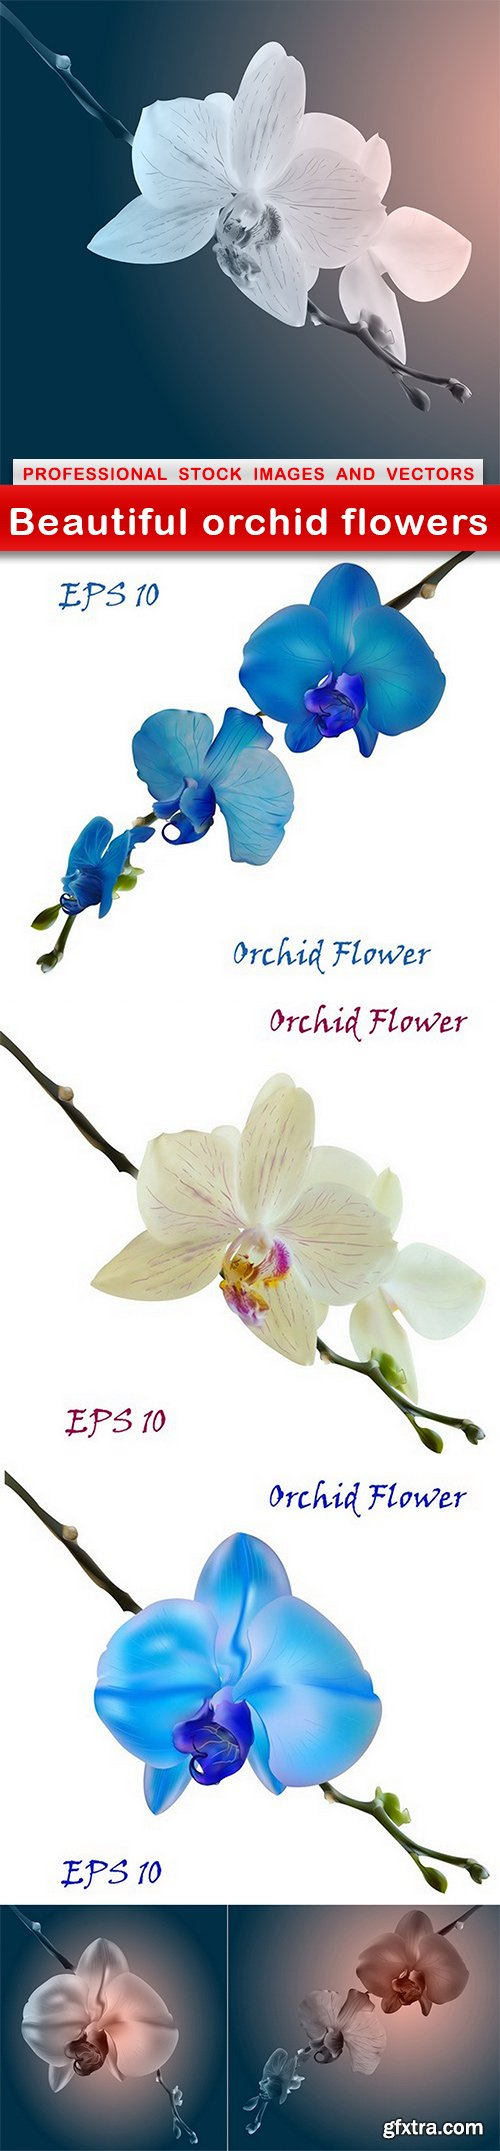 Beautiful orchid flowers - 6 EPS